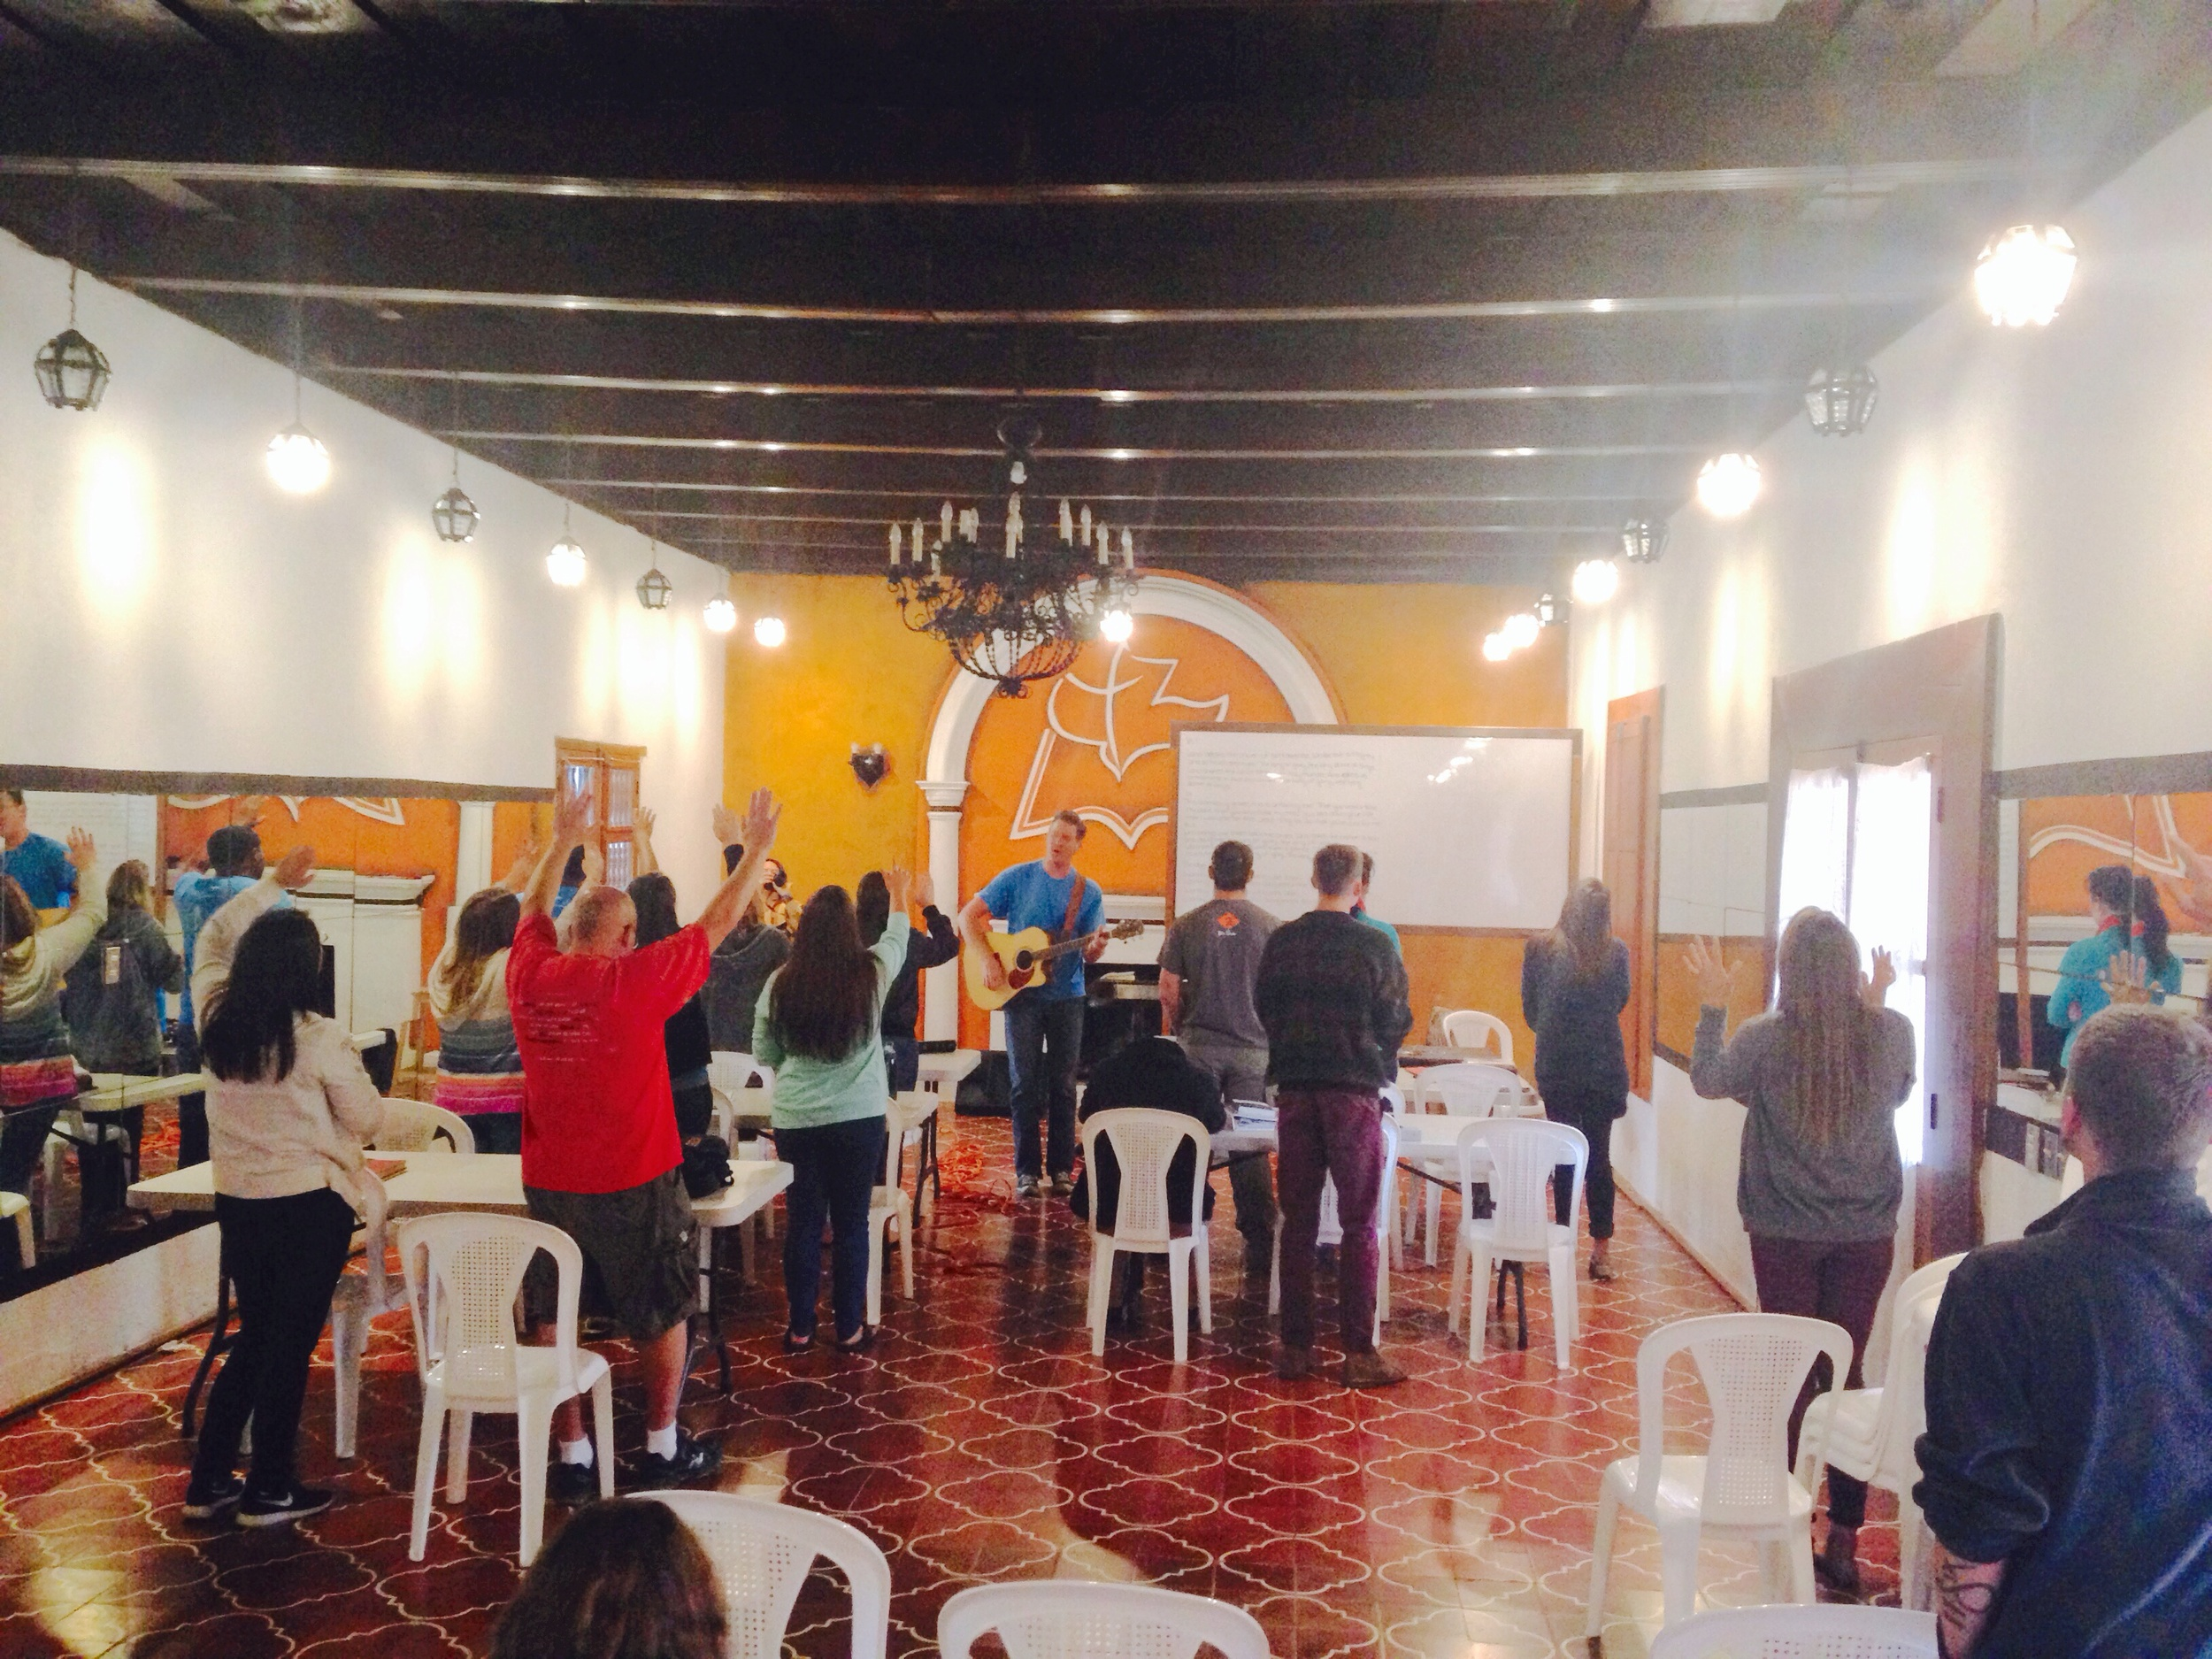 Ths is the class room at the school. Donothan lead in worship and teaching all morning, it was a blessing!